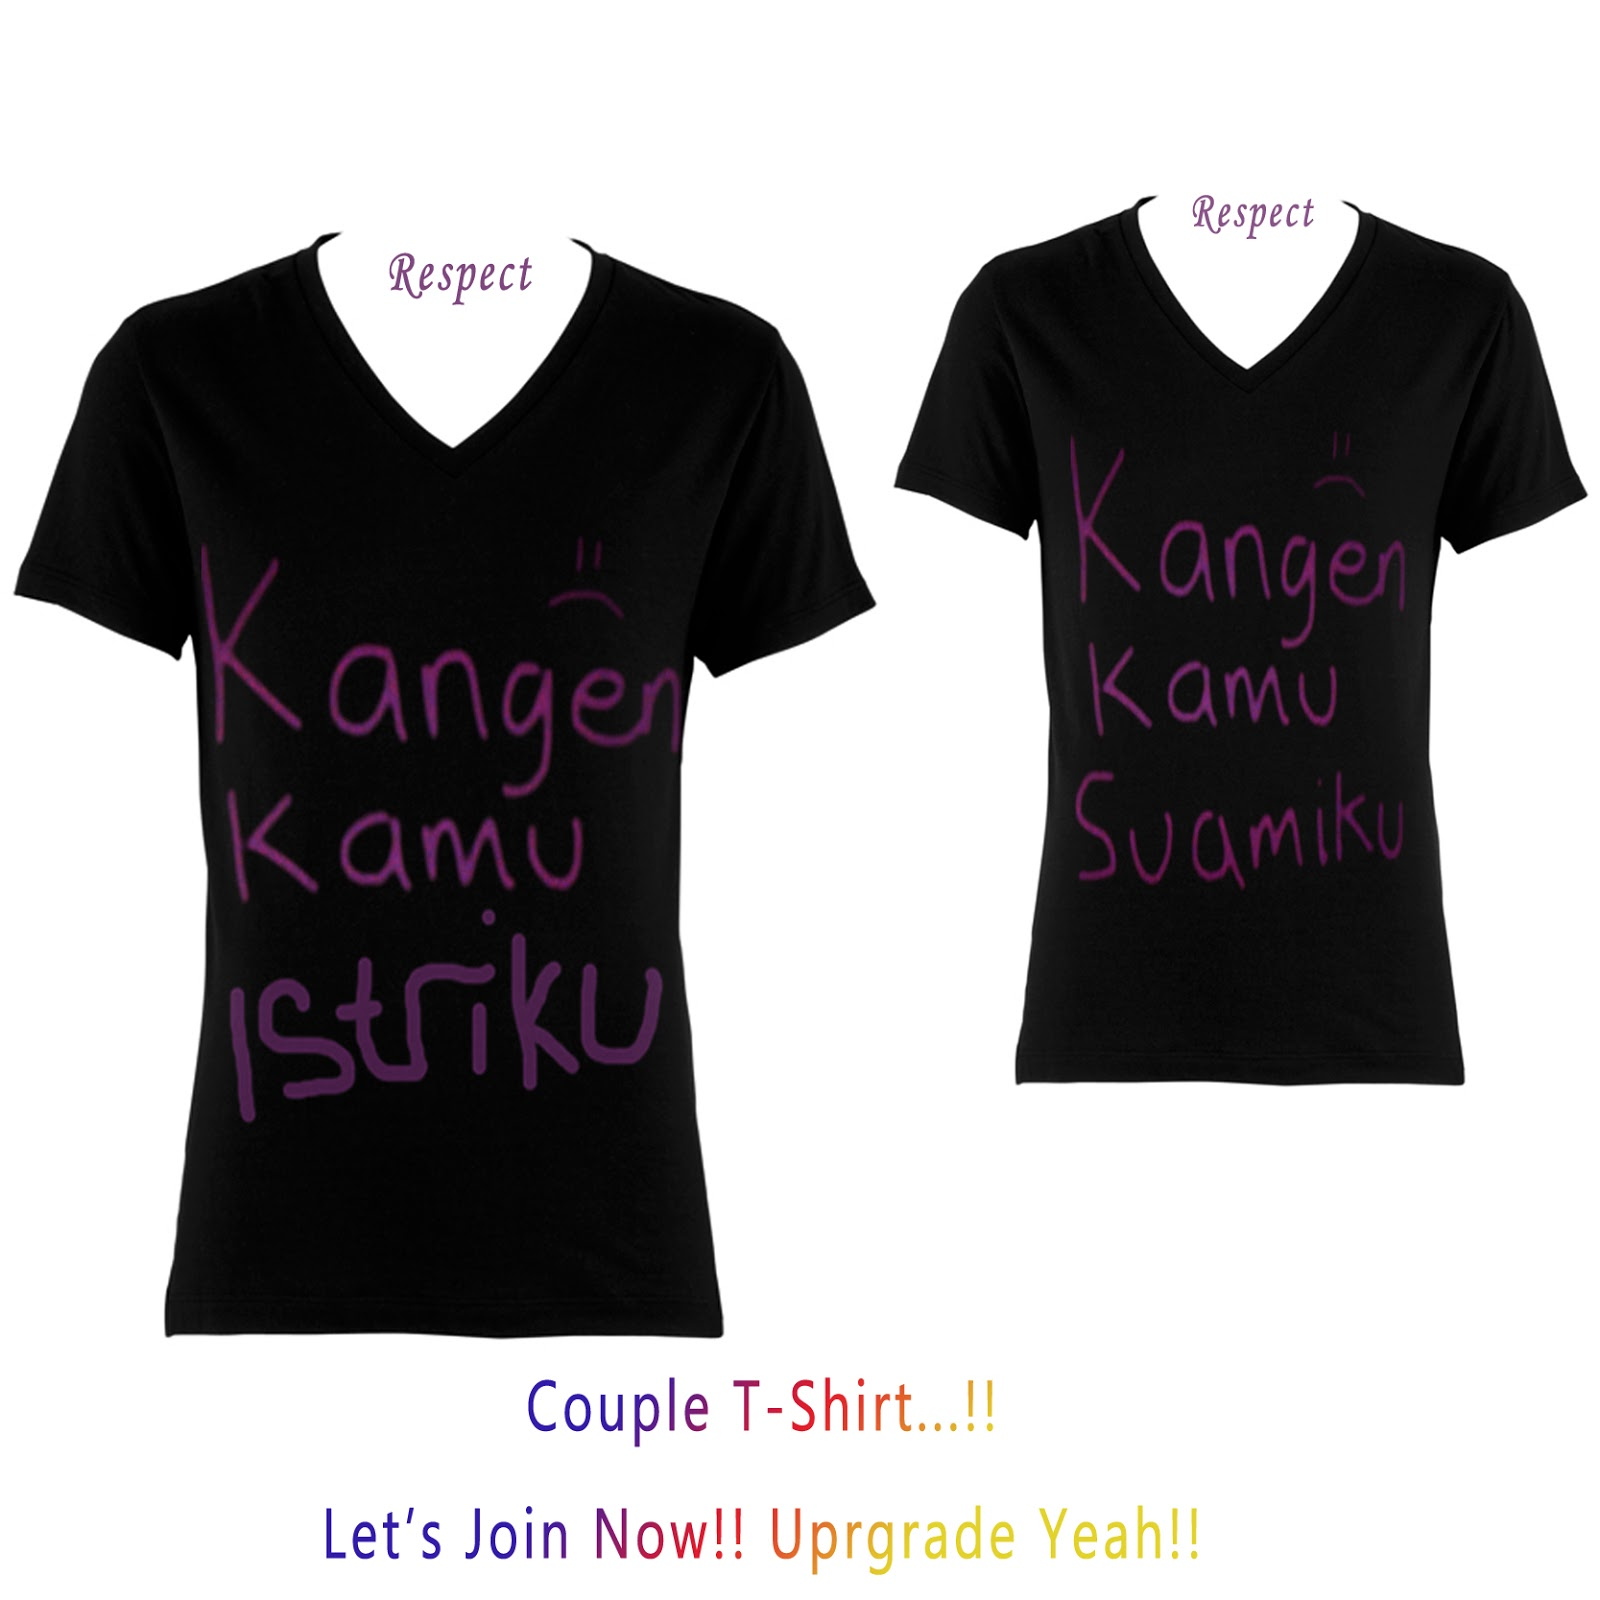 Couple t shirt design joy studio design gallery best for Best couple t shirt design